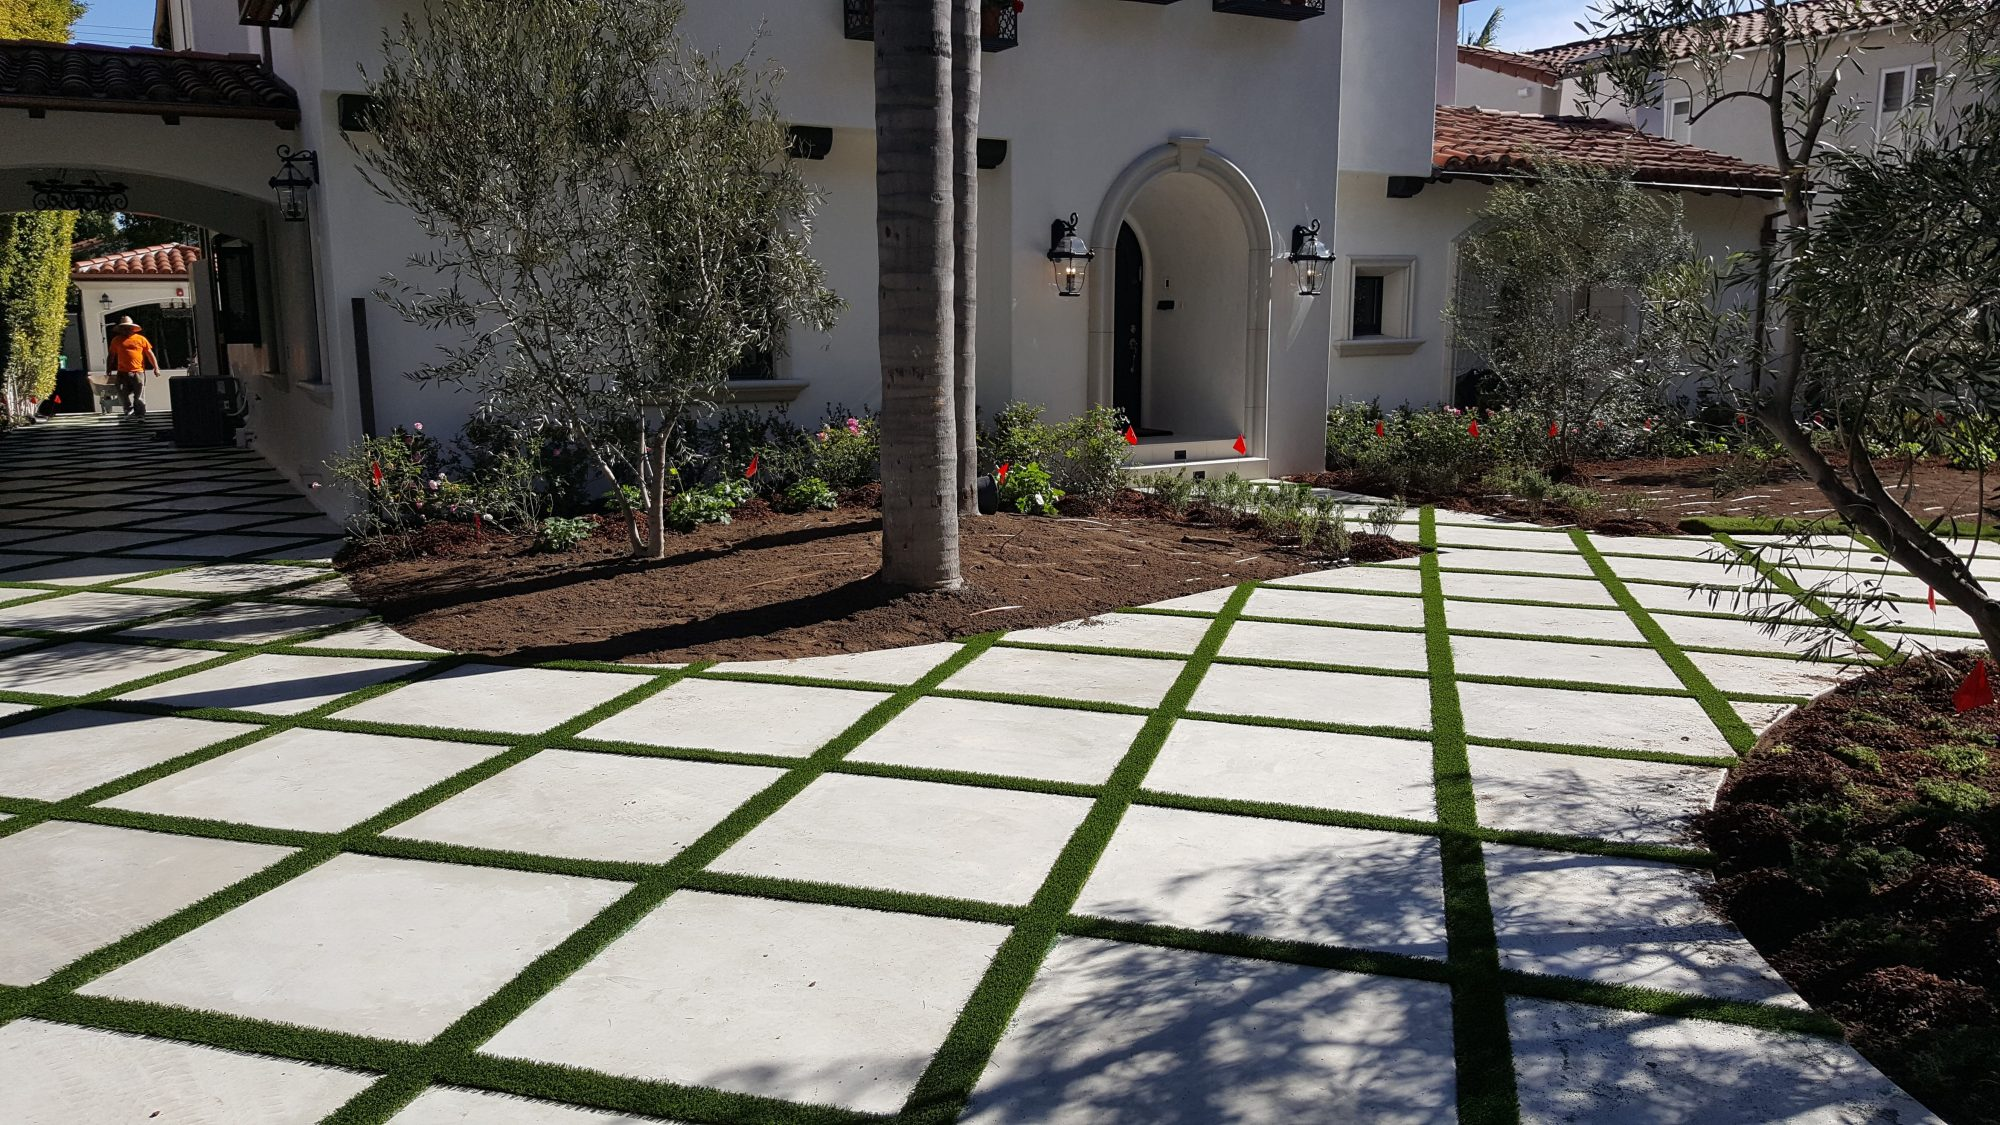 Image of Extravagent House and Turf Strip Driveway